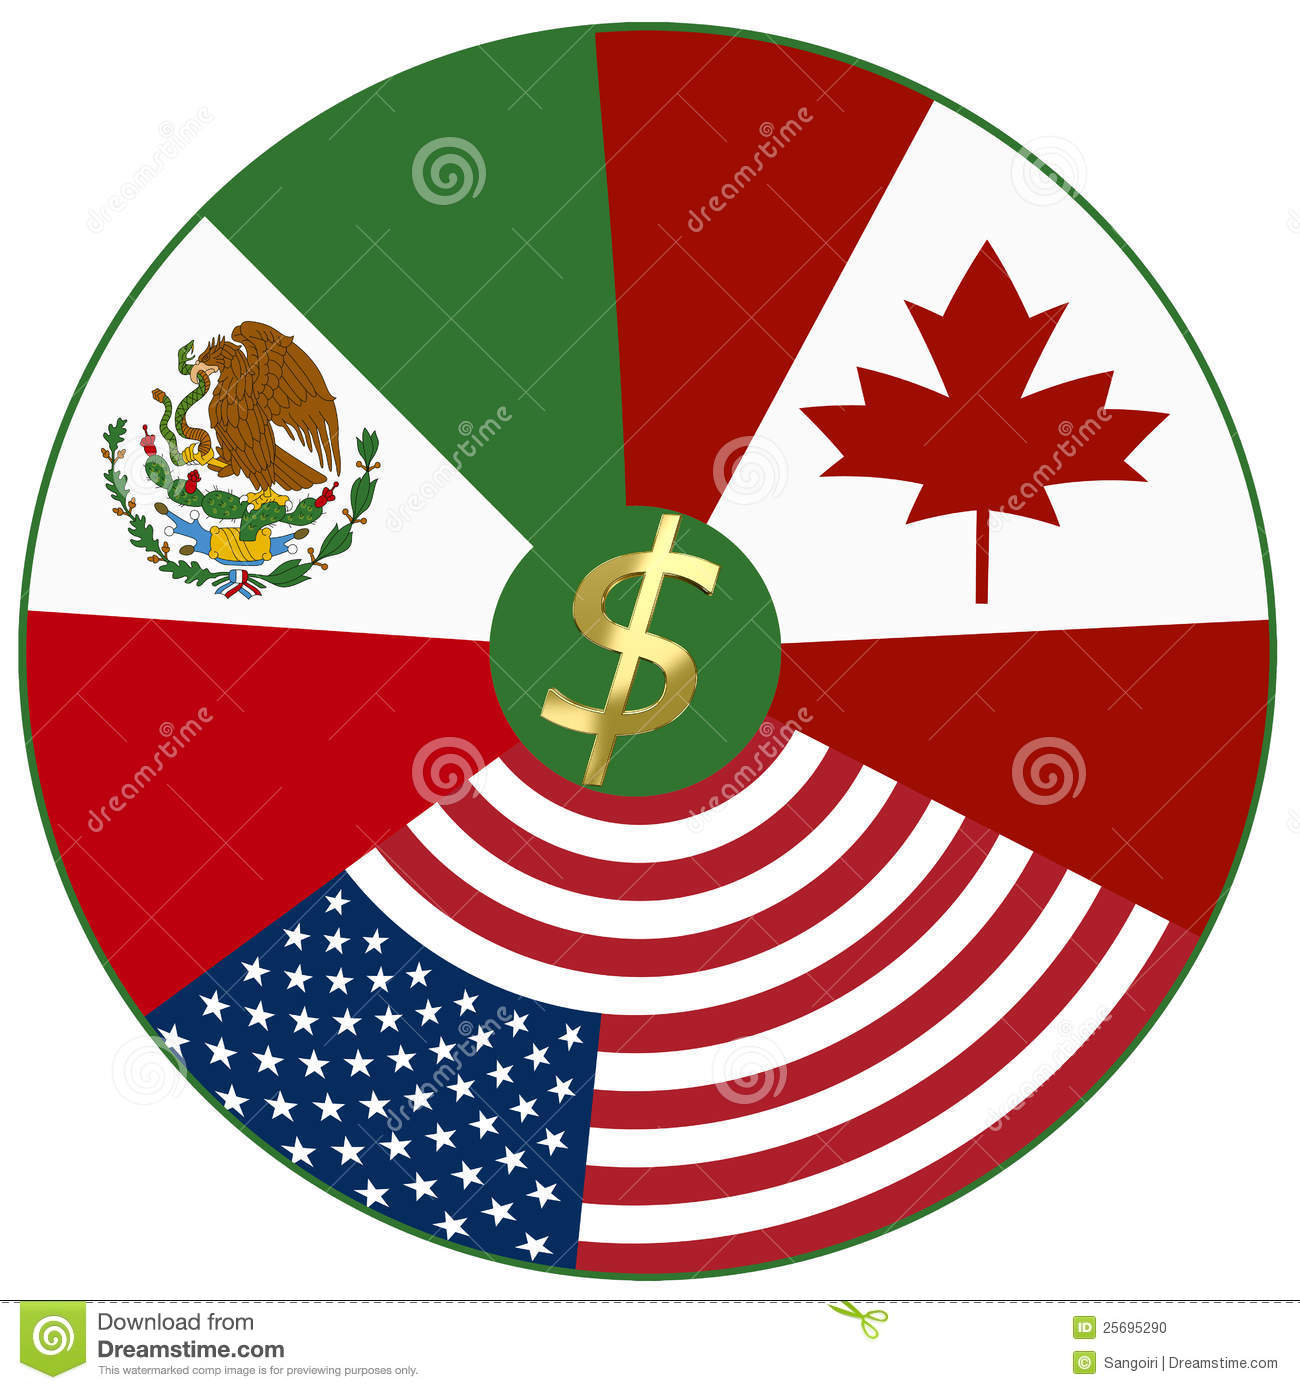 North American Free Trade Agreement between Canada, Mexico, USA.